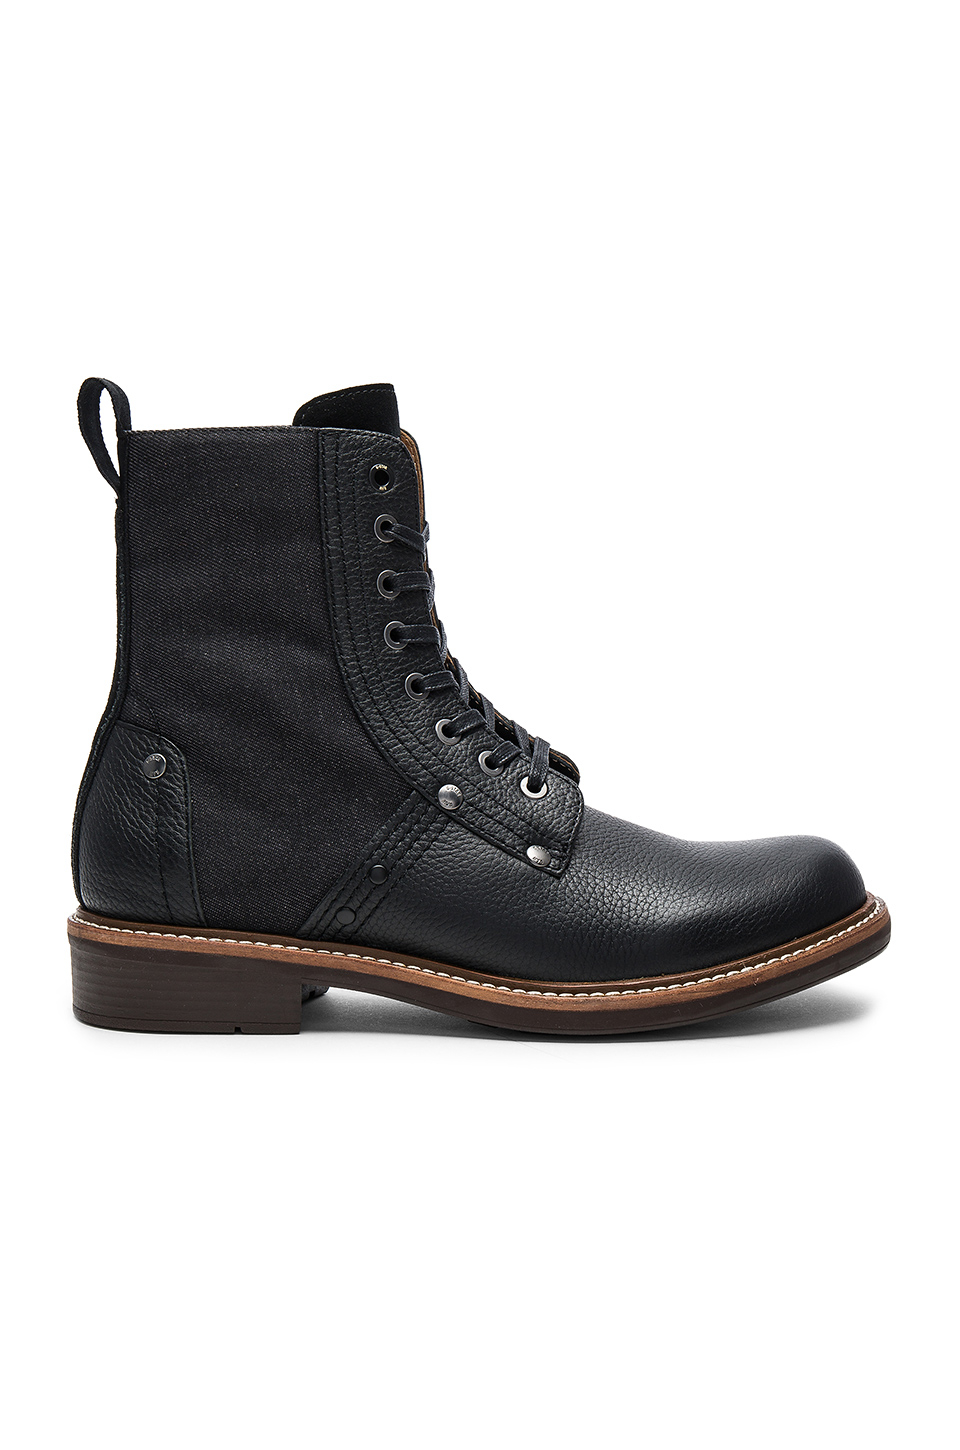 g star raw labour boot in black for men lyst. Black Bedroom Furniture Sets. Home Design Ideas